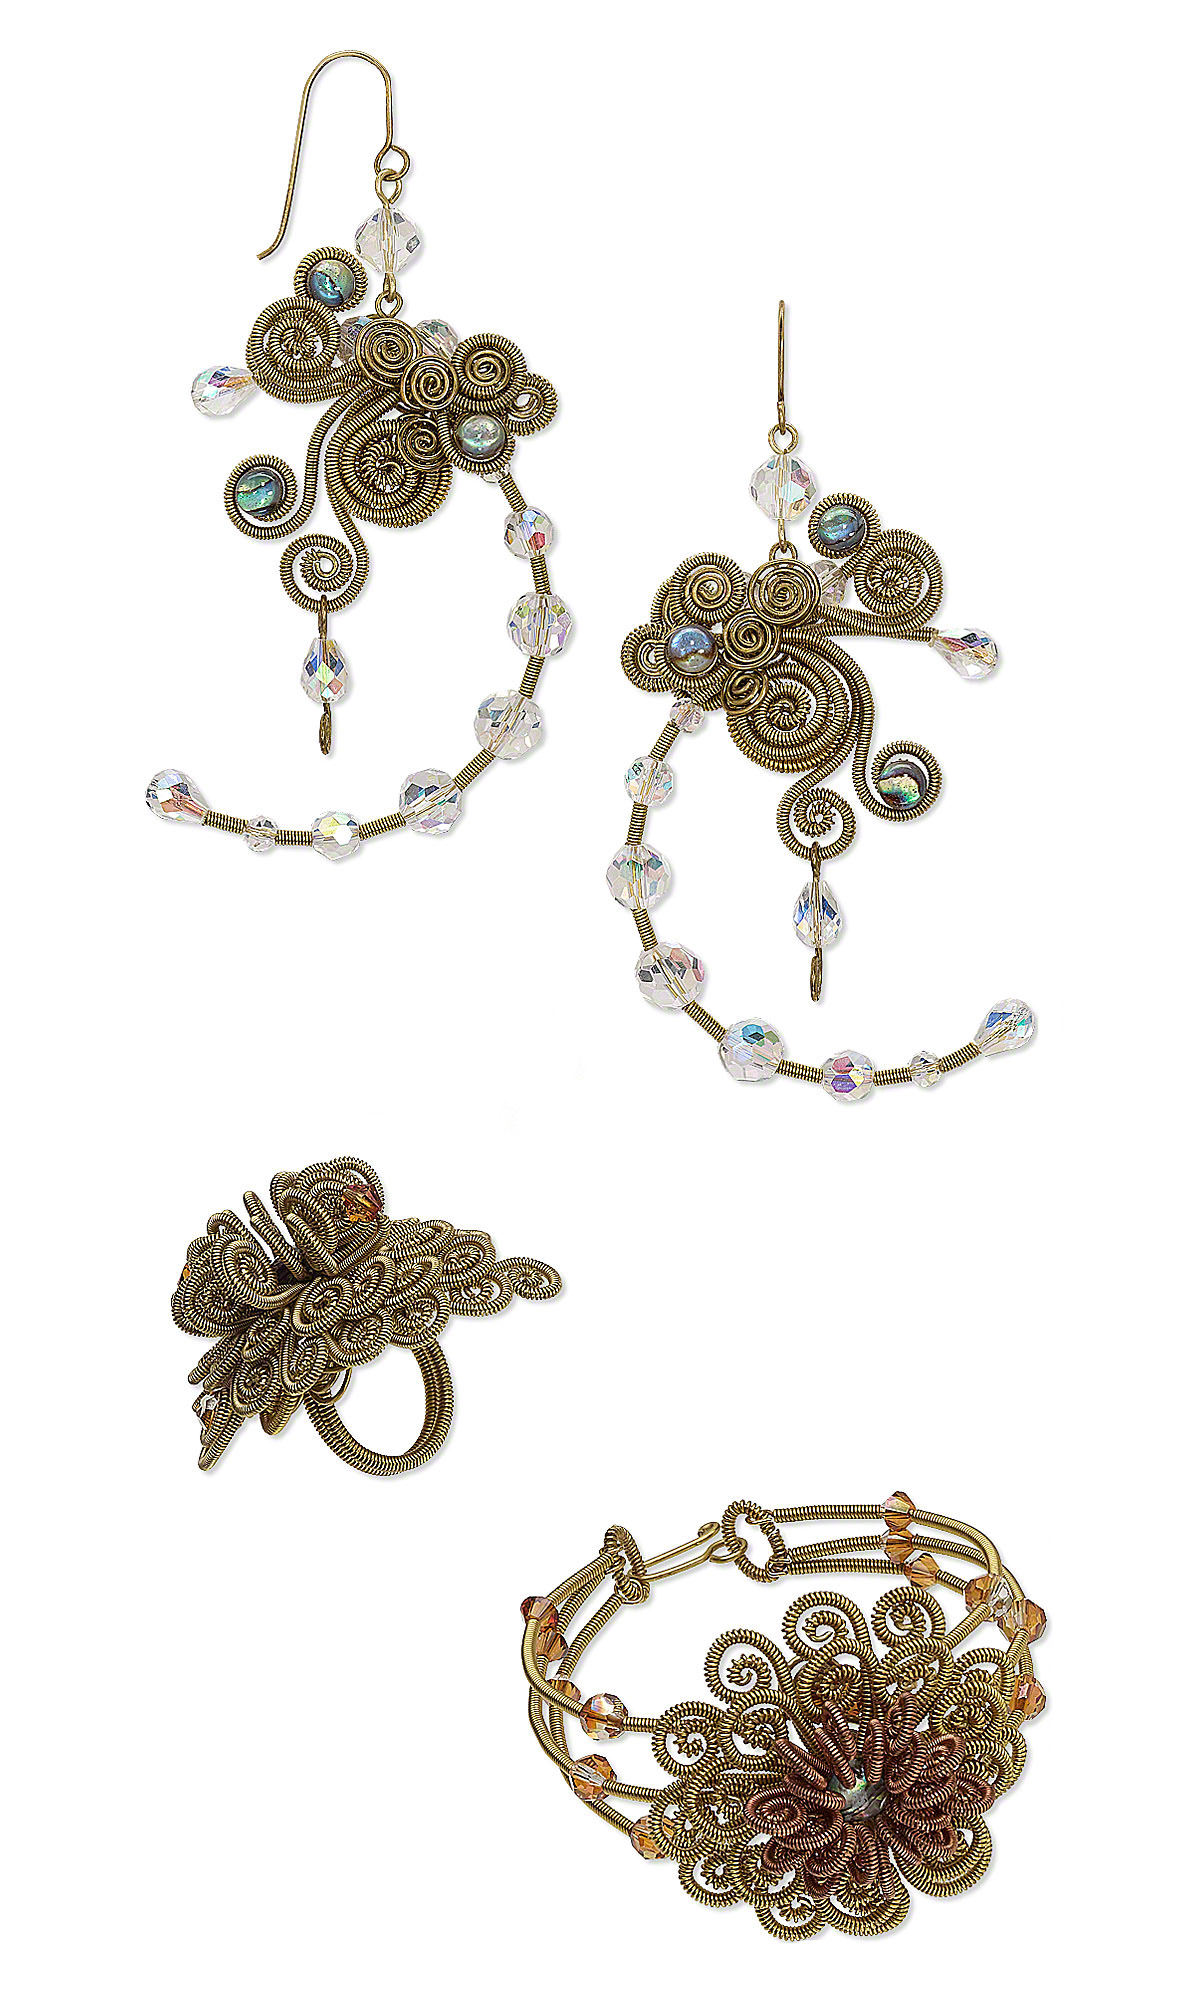 Jewelry Design - Bracelet, Earring and Ring Set with Wire Wrap ...